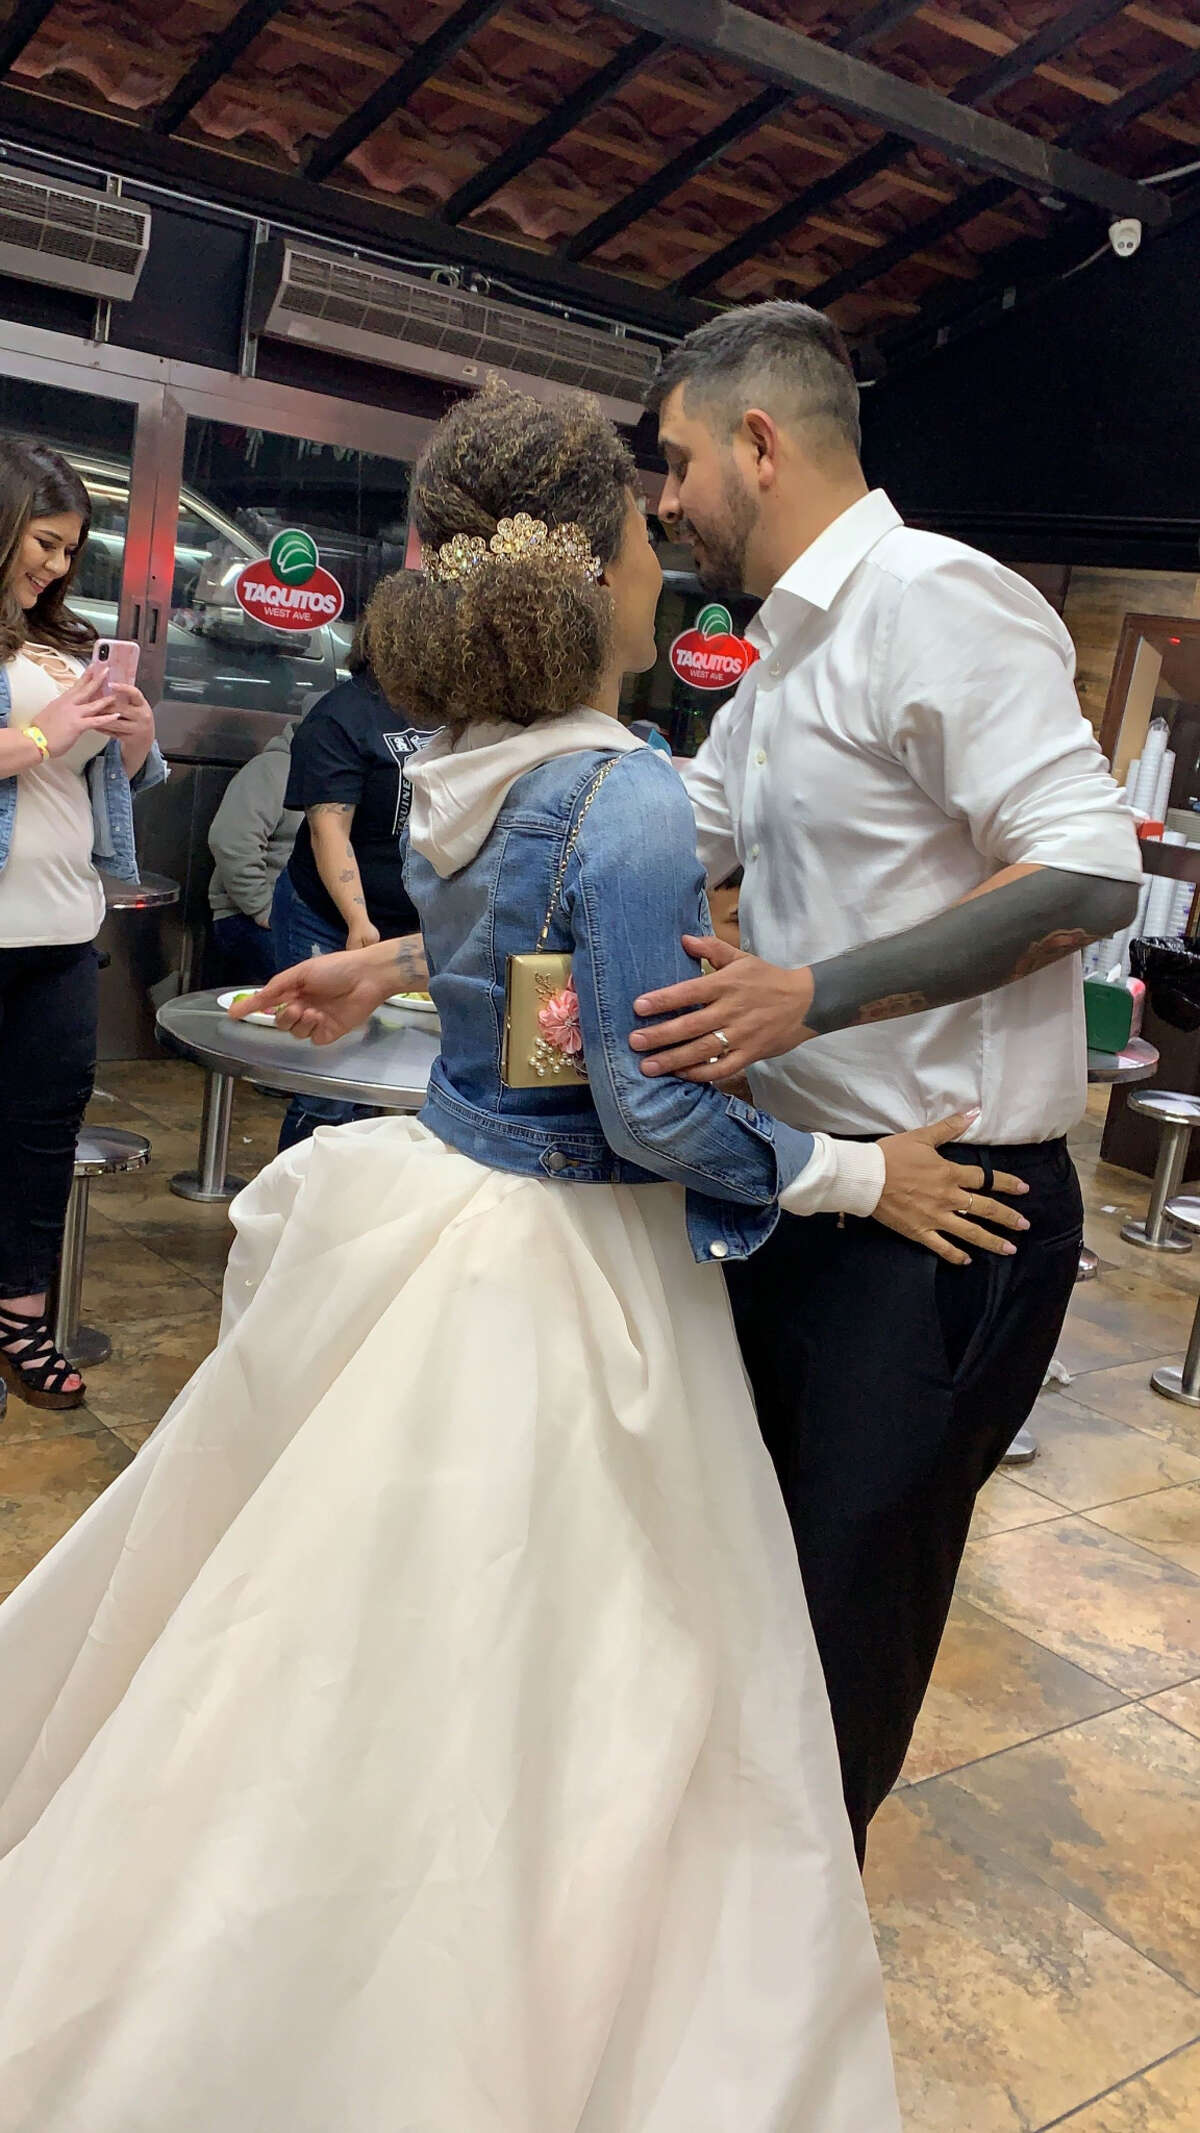 Twitter user Samantha Figueroa caught the unnamed love birds at the popular taquitos spot located at 2818 West Avenue Saturday night.